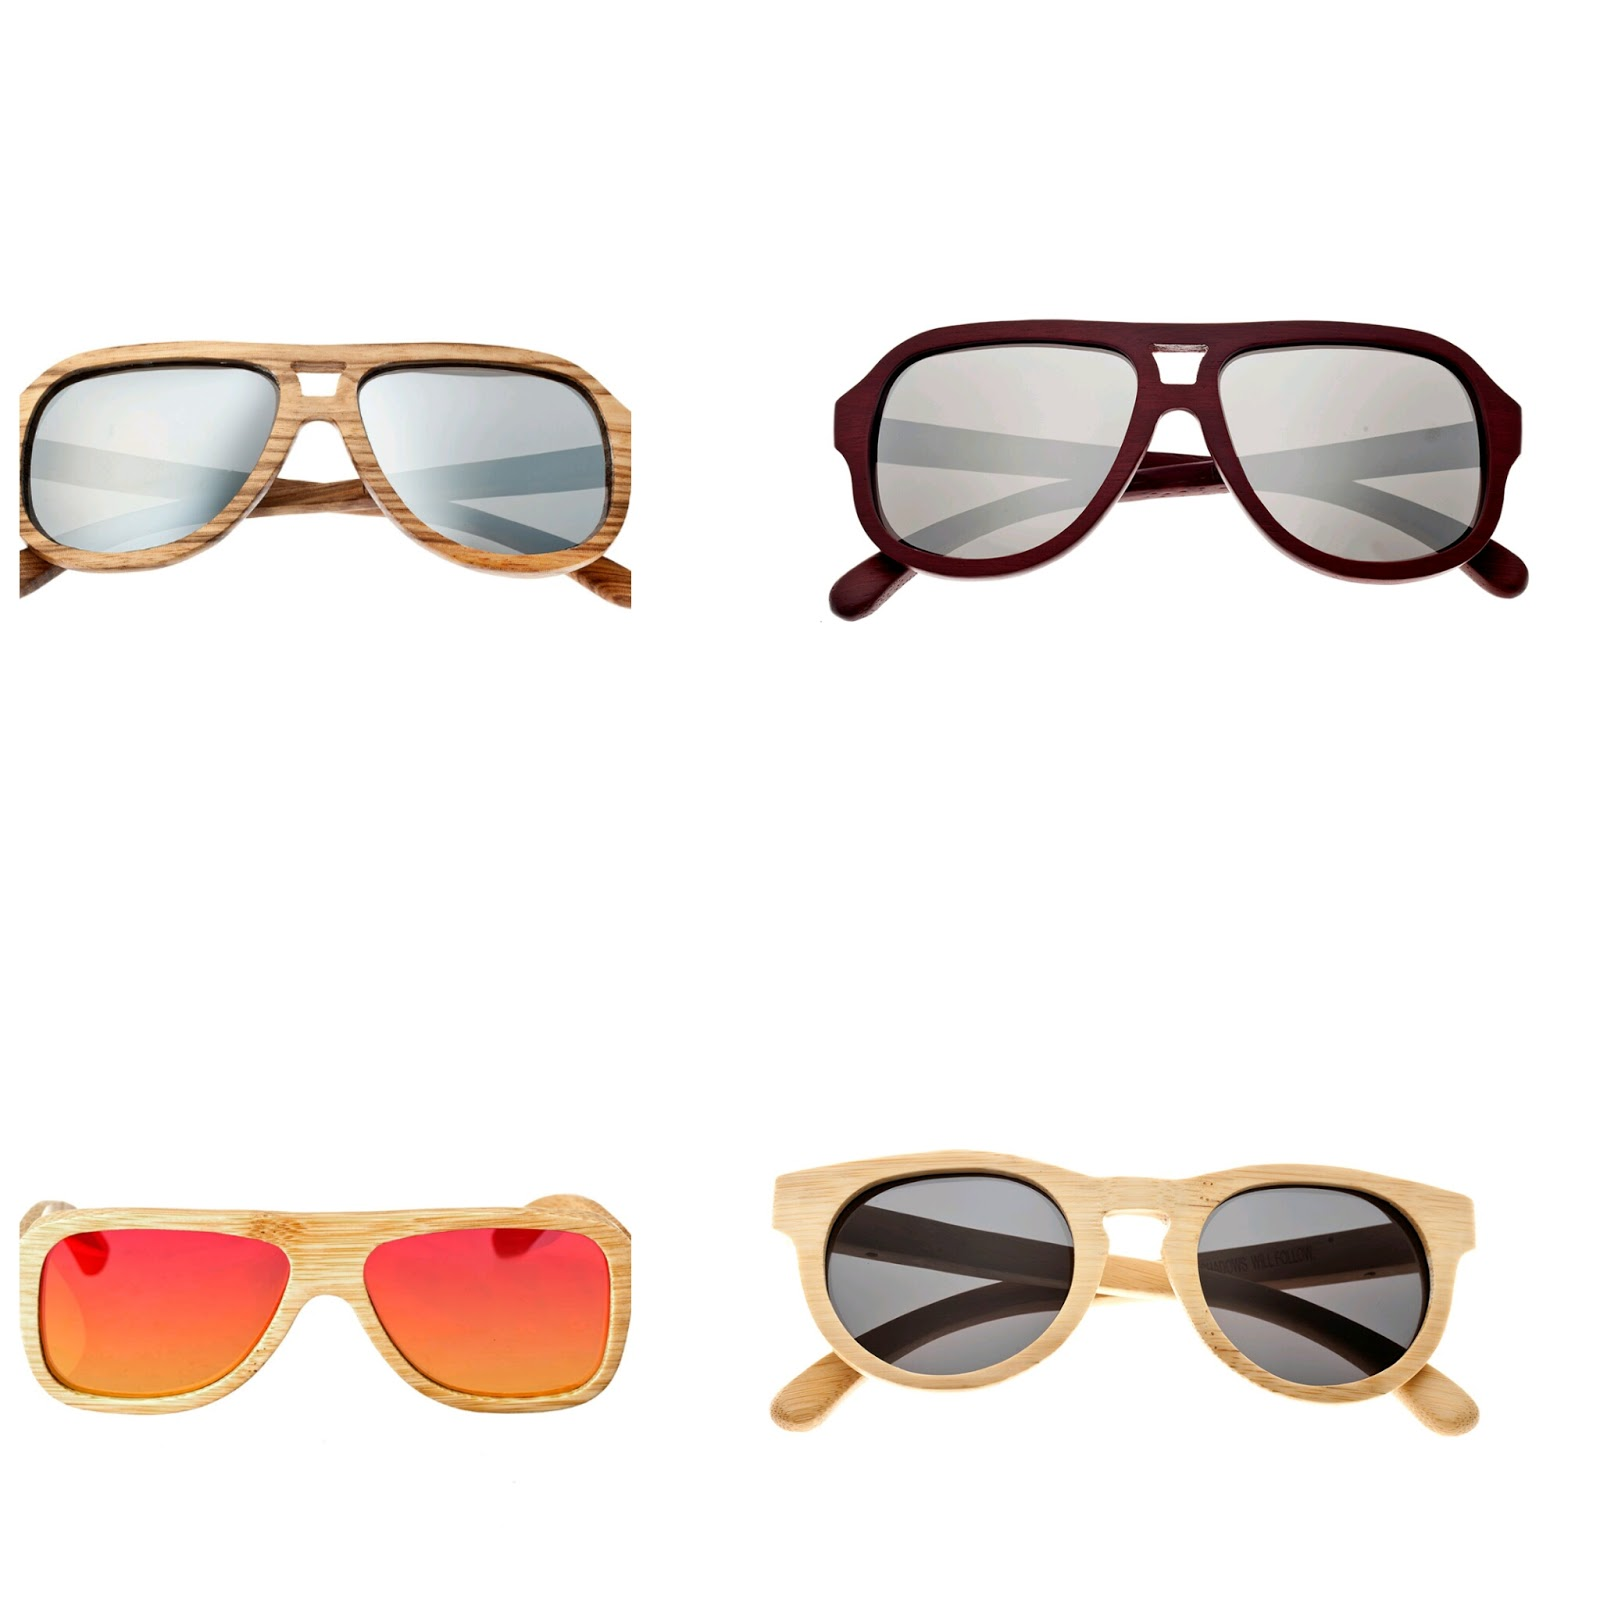 Product Spotlight: Earth Wood Sunglasses and Watches